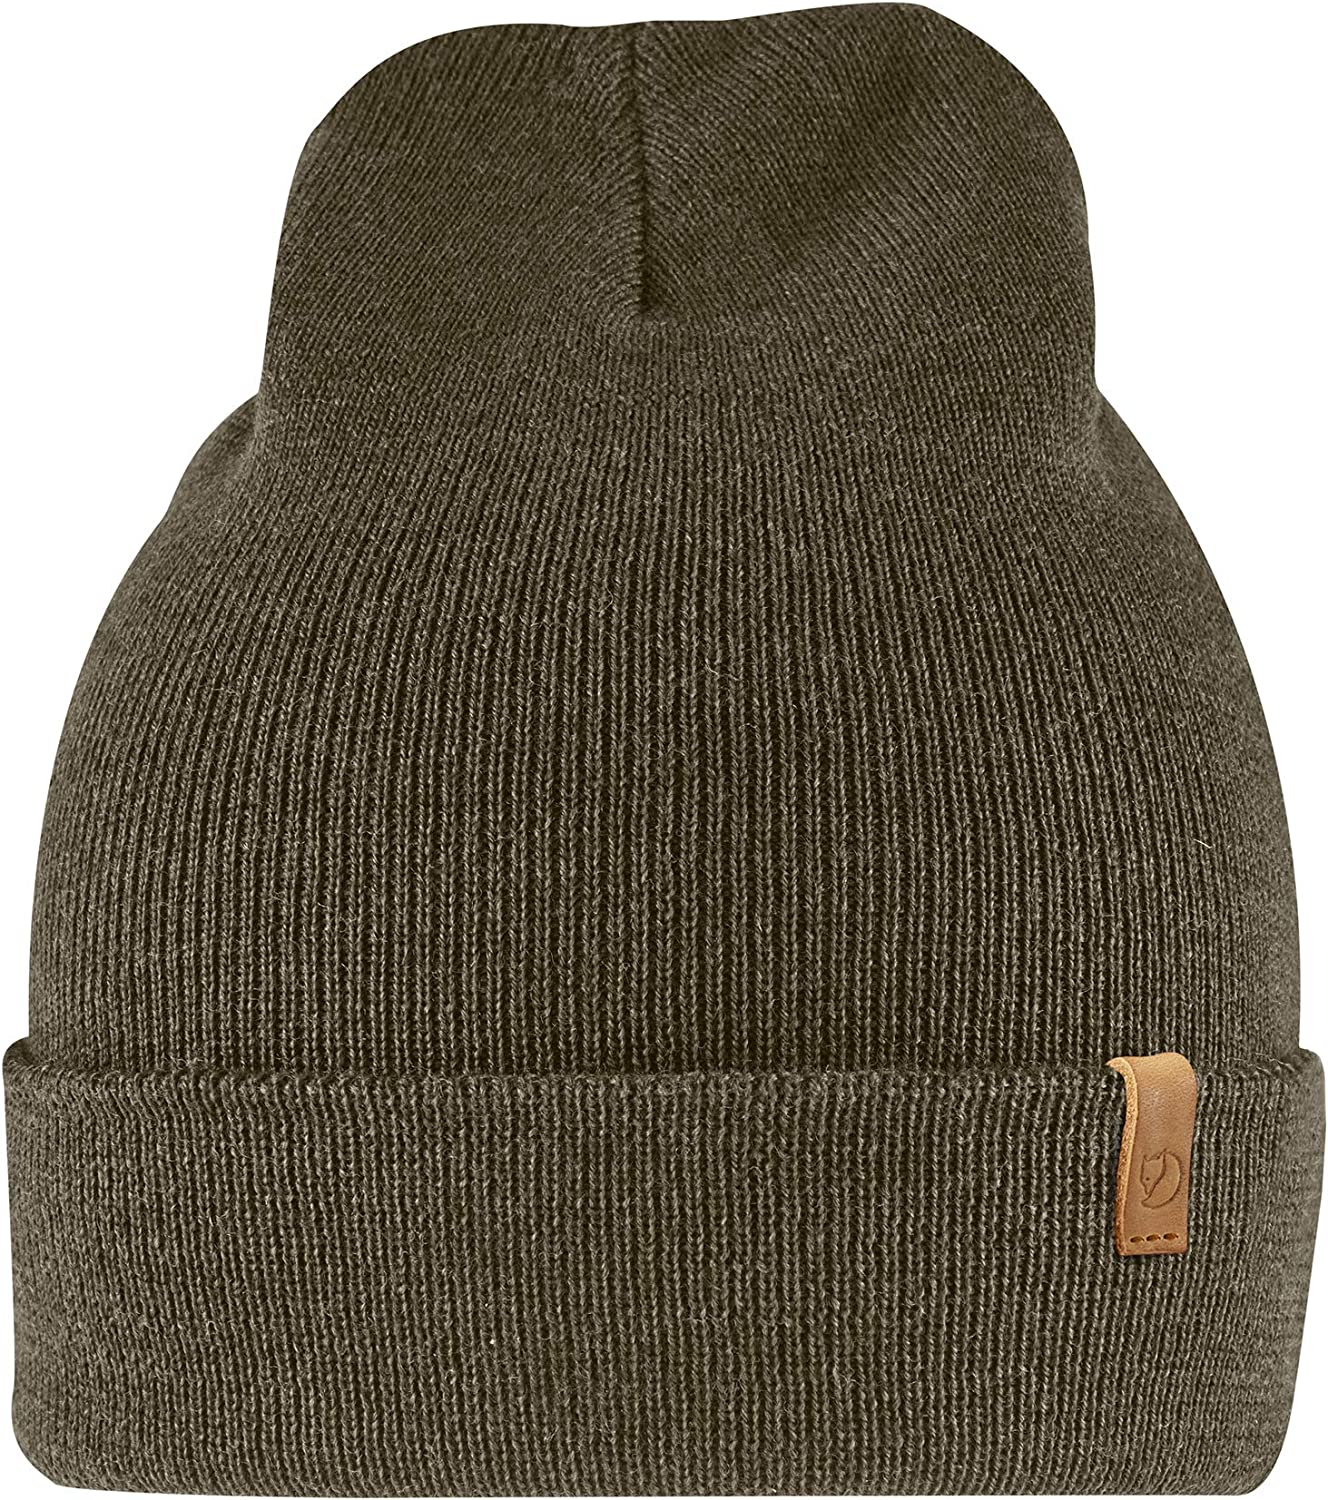 Sale SALE% OFF Fjallraven - Classic Challenge the lowest price Hat Knit